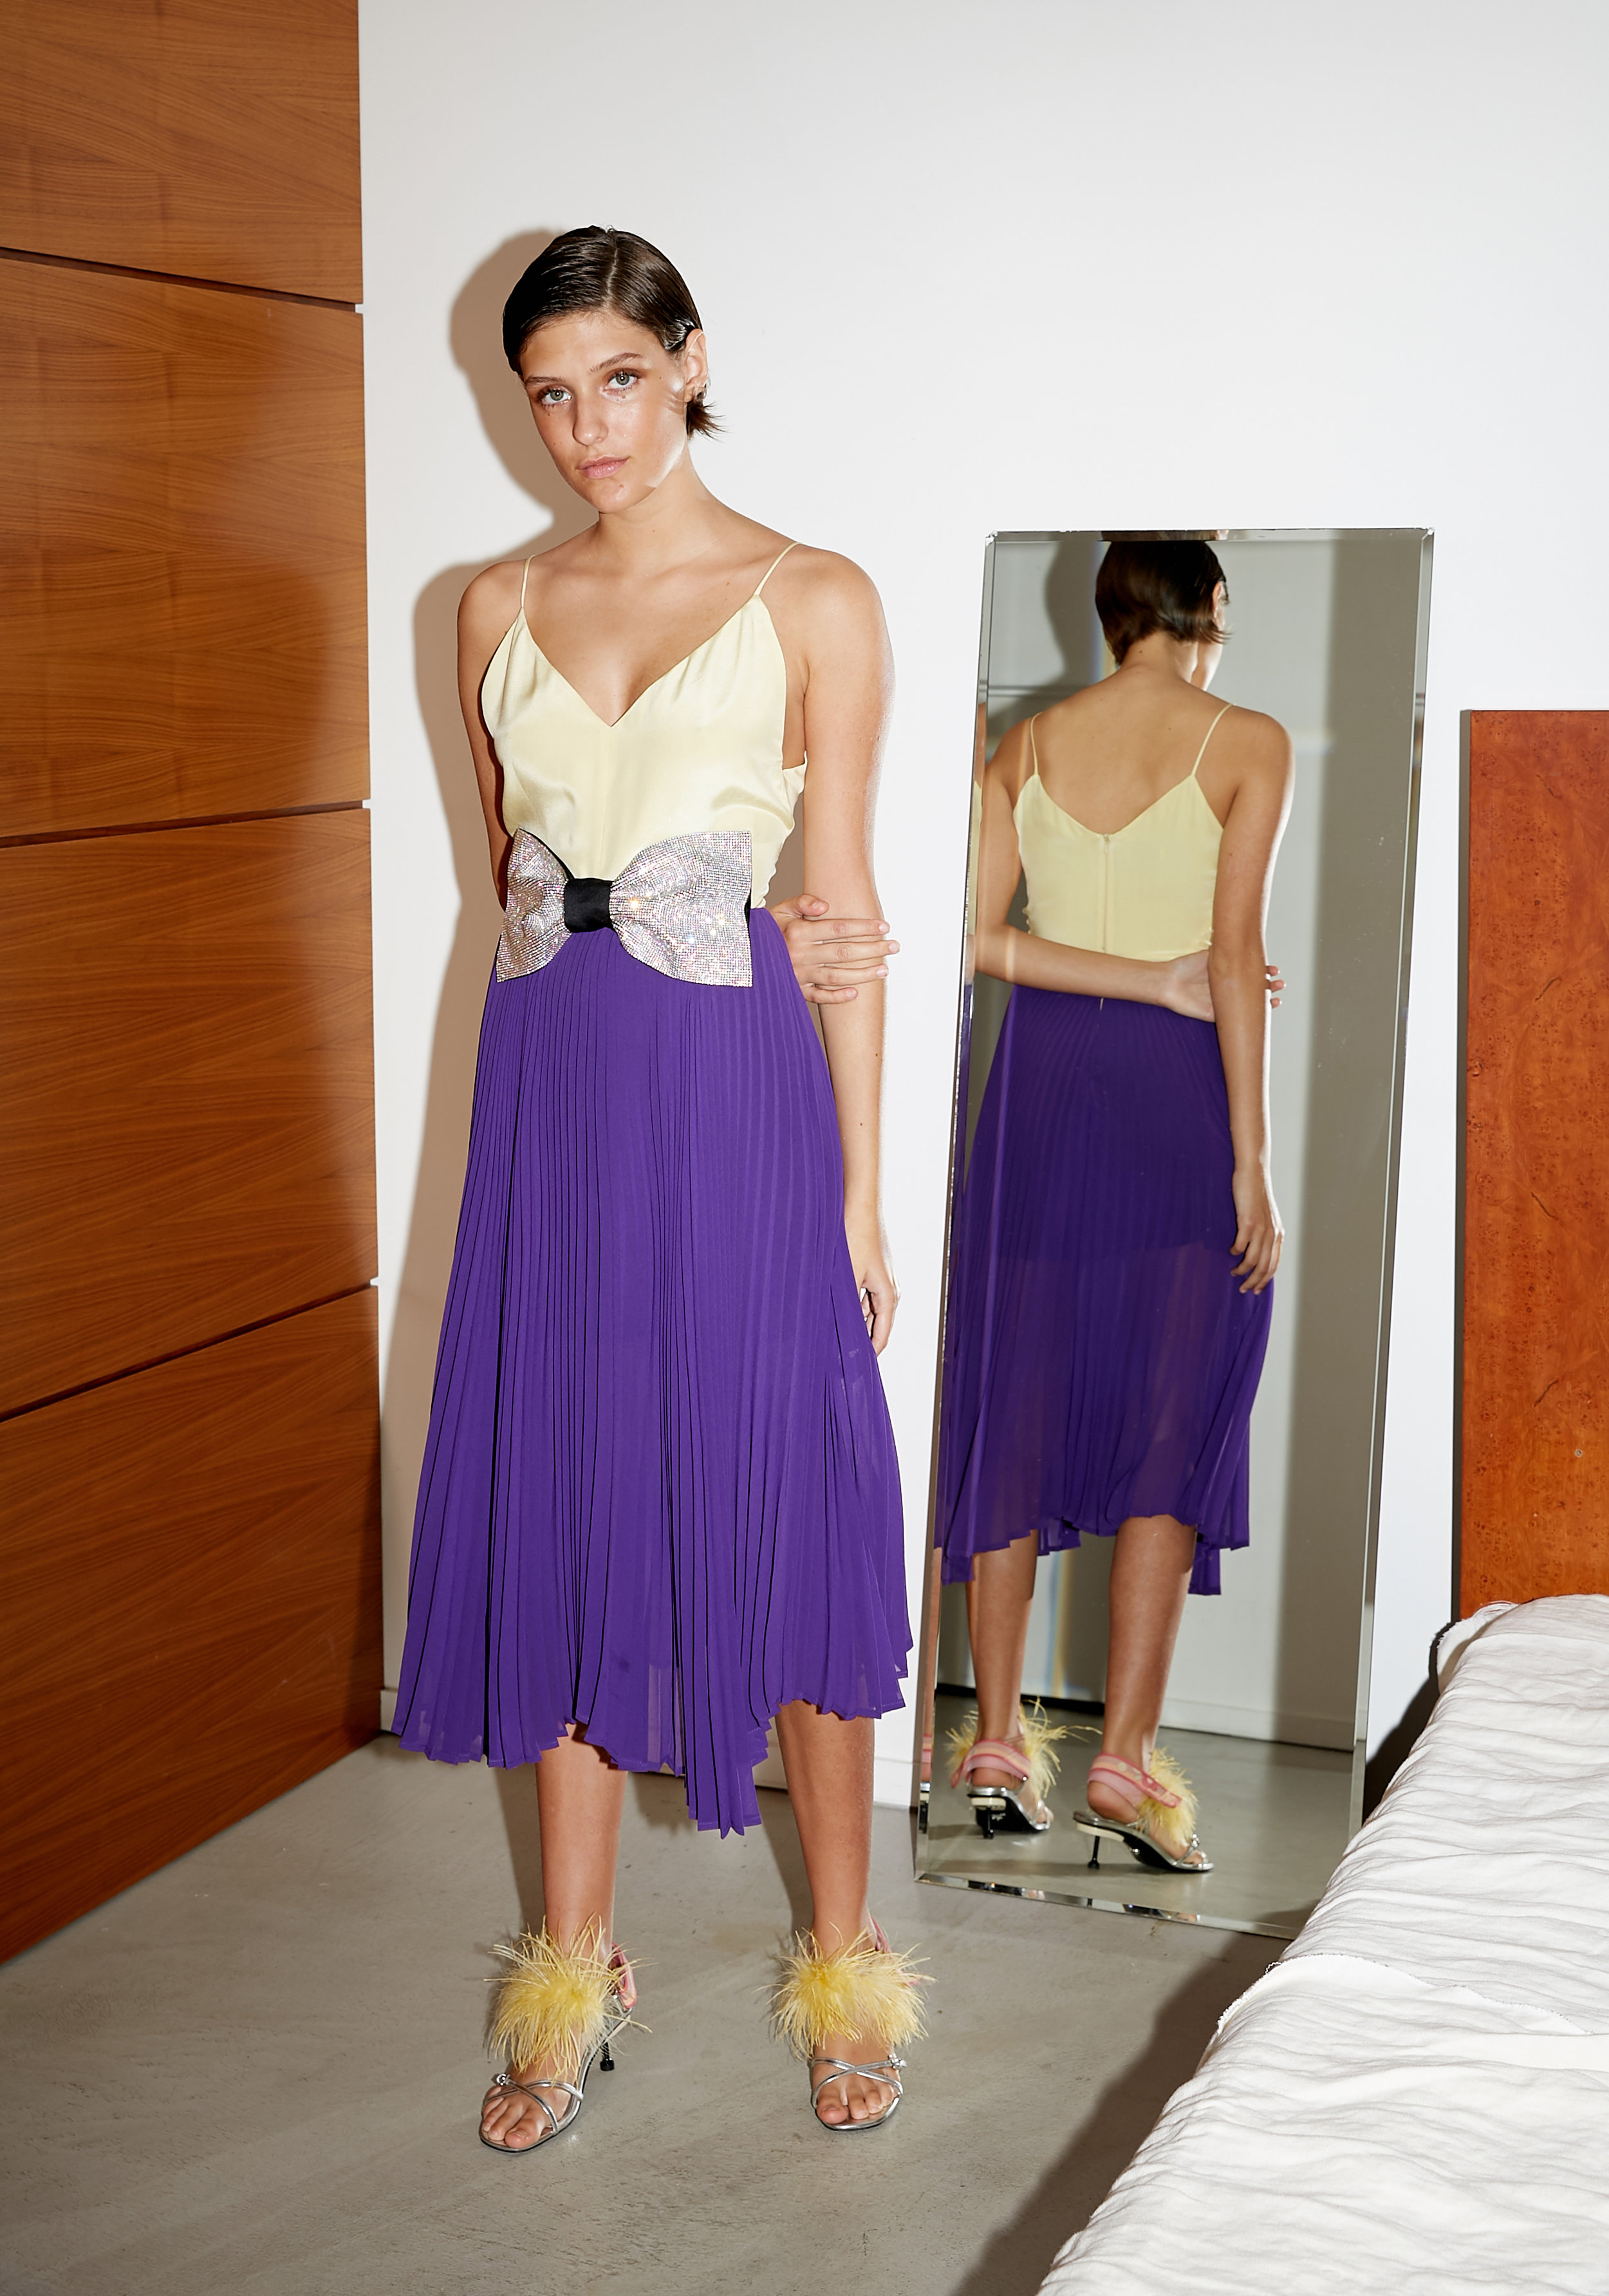 Model stands in color block dress with butter yellow cami on top and pleated skirt with crystal bow at it's waist